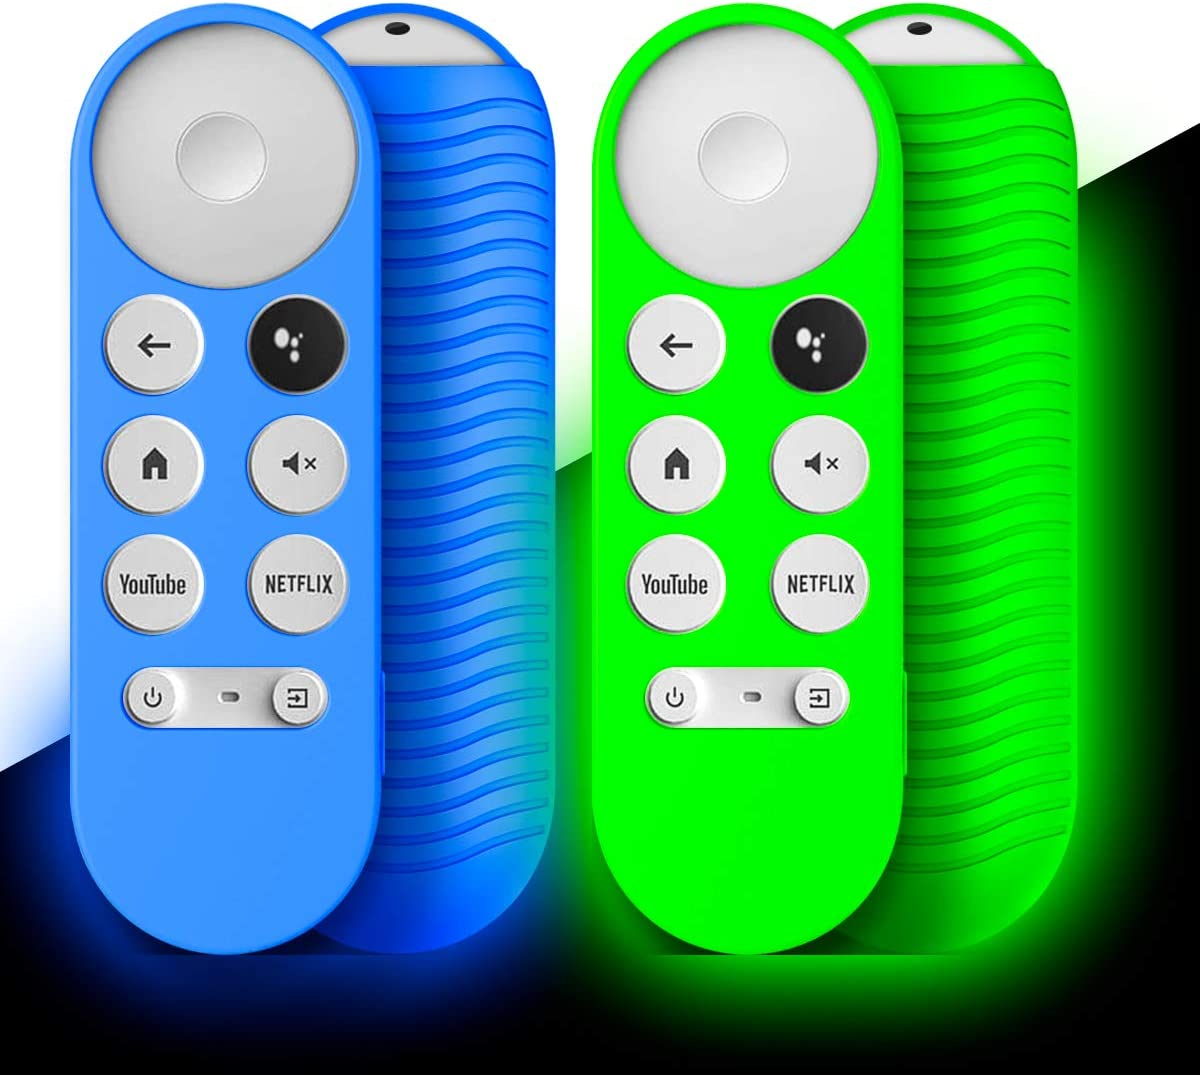 [2-Pack] Silicone Cover for Chromecast Google TV 2020 Voice Remote, WQNIDE Protective Shockproof Anti-Lost Remote with Lanyard (Glowing Blue and Glowing Green)